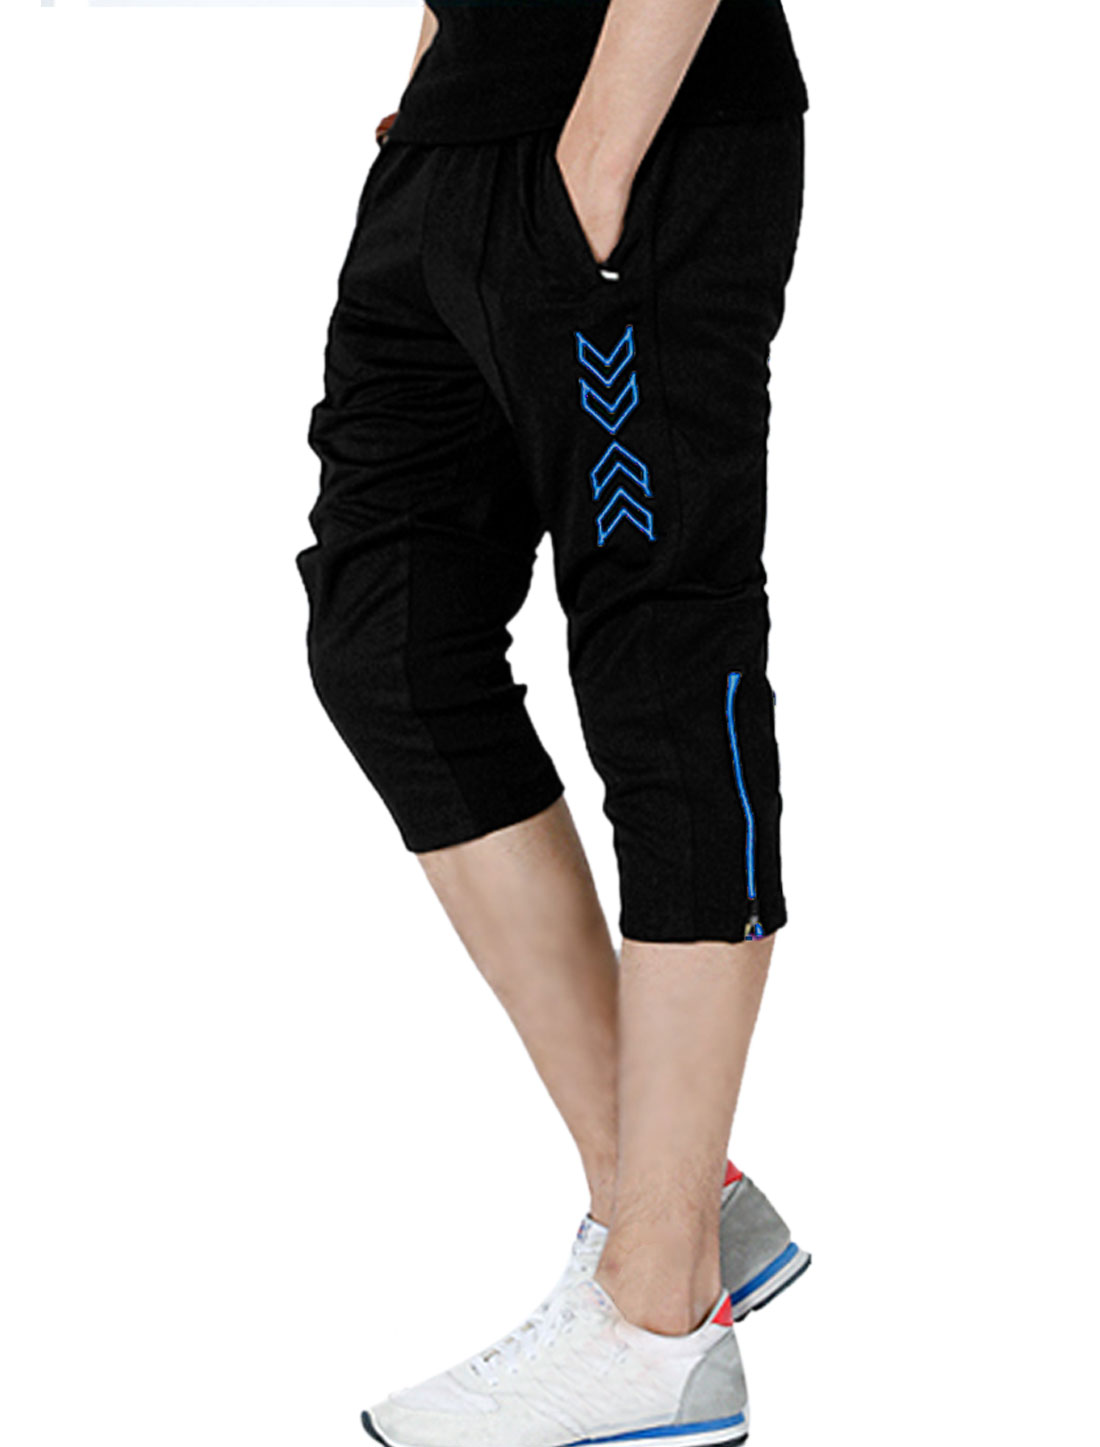 Men Elastic Waist Zipper Decor Capris Pants Blue Black W33